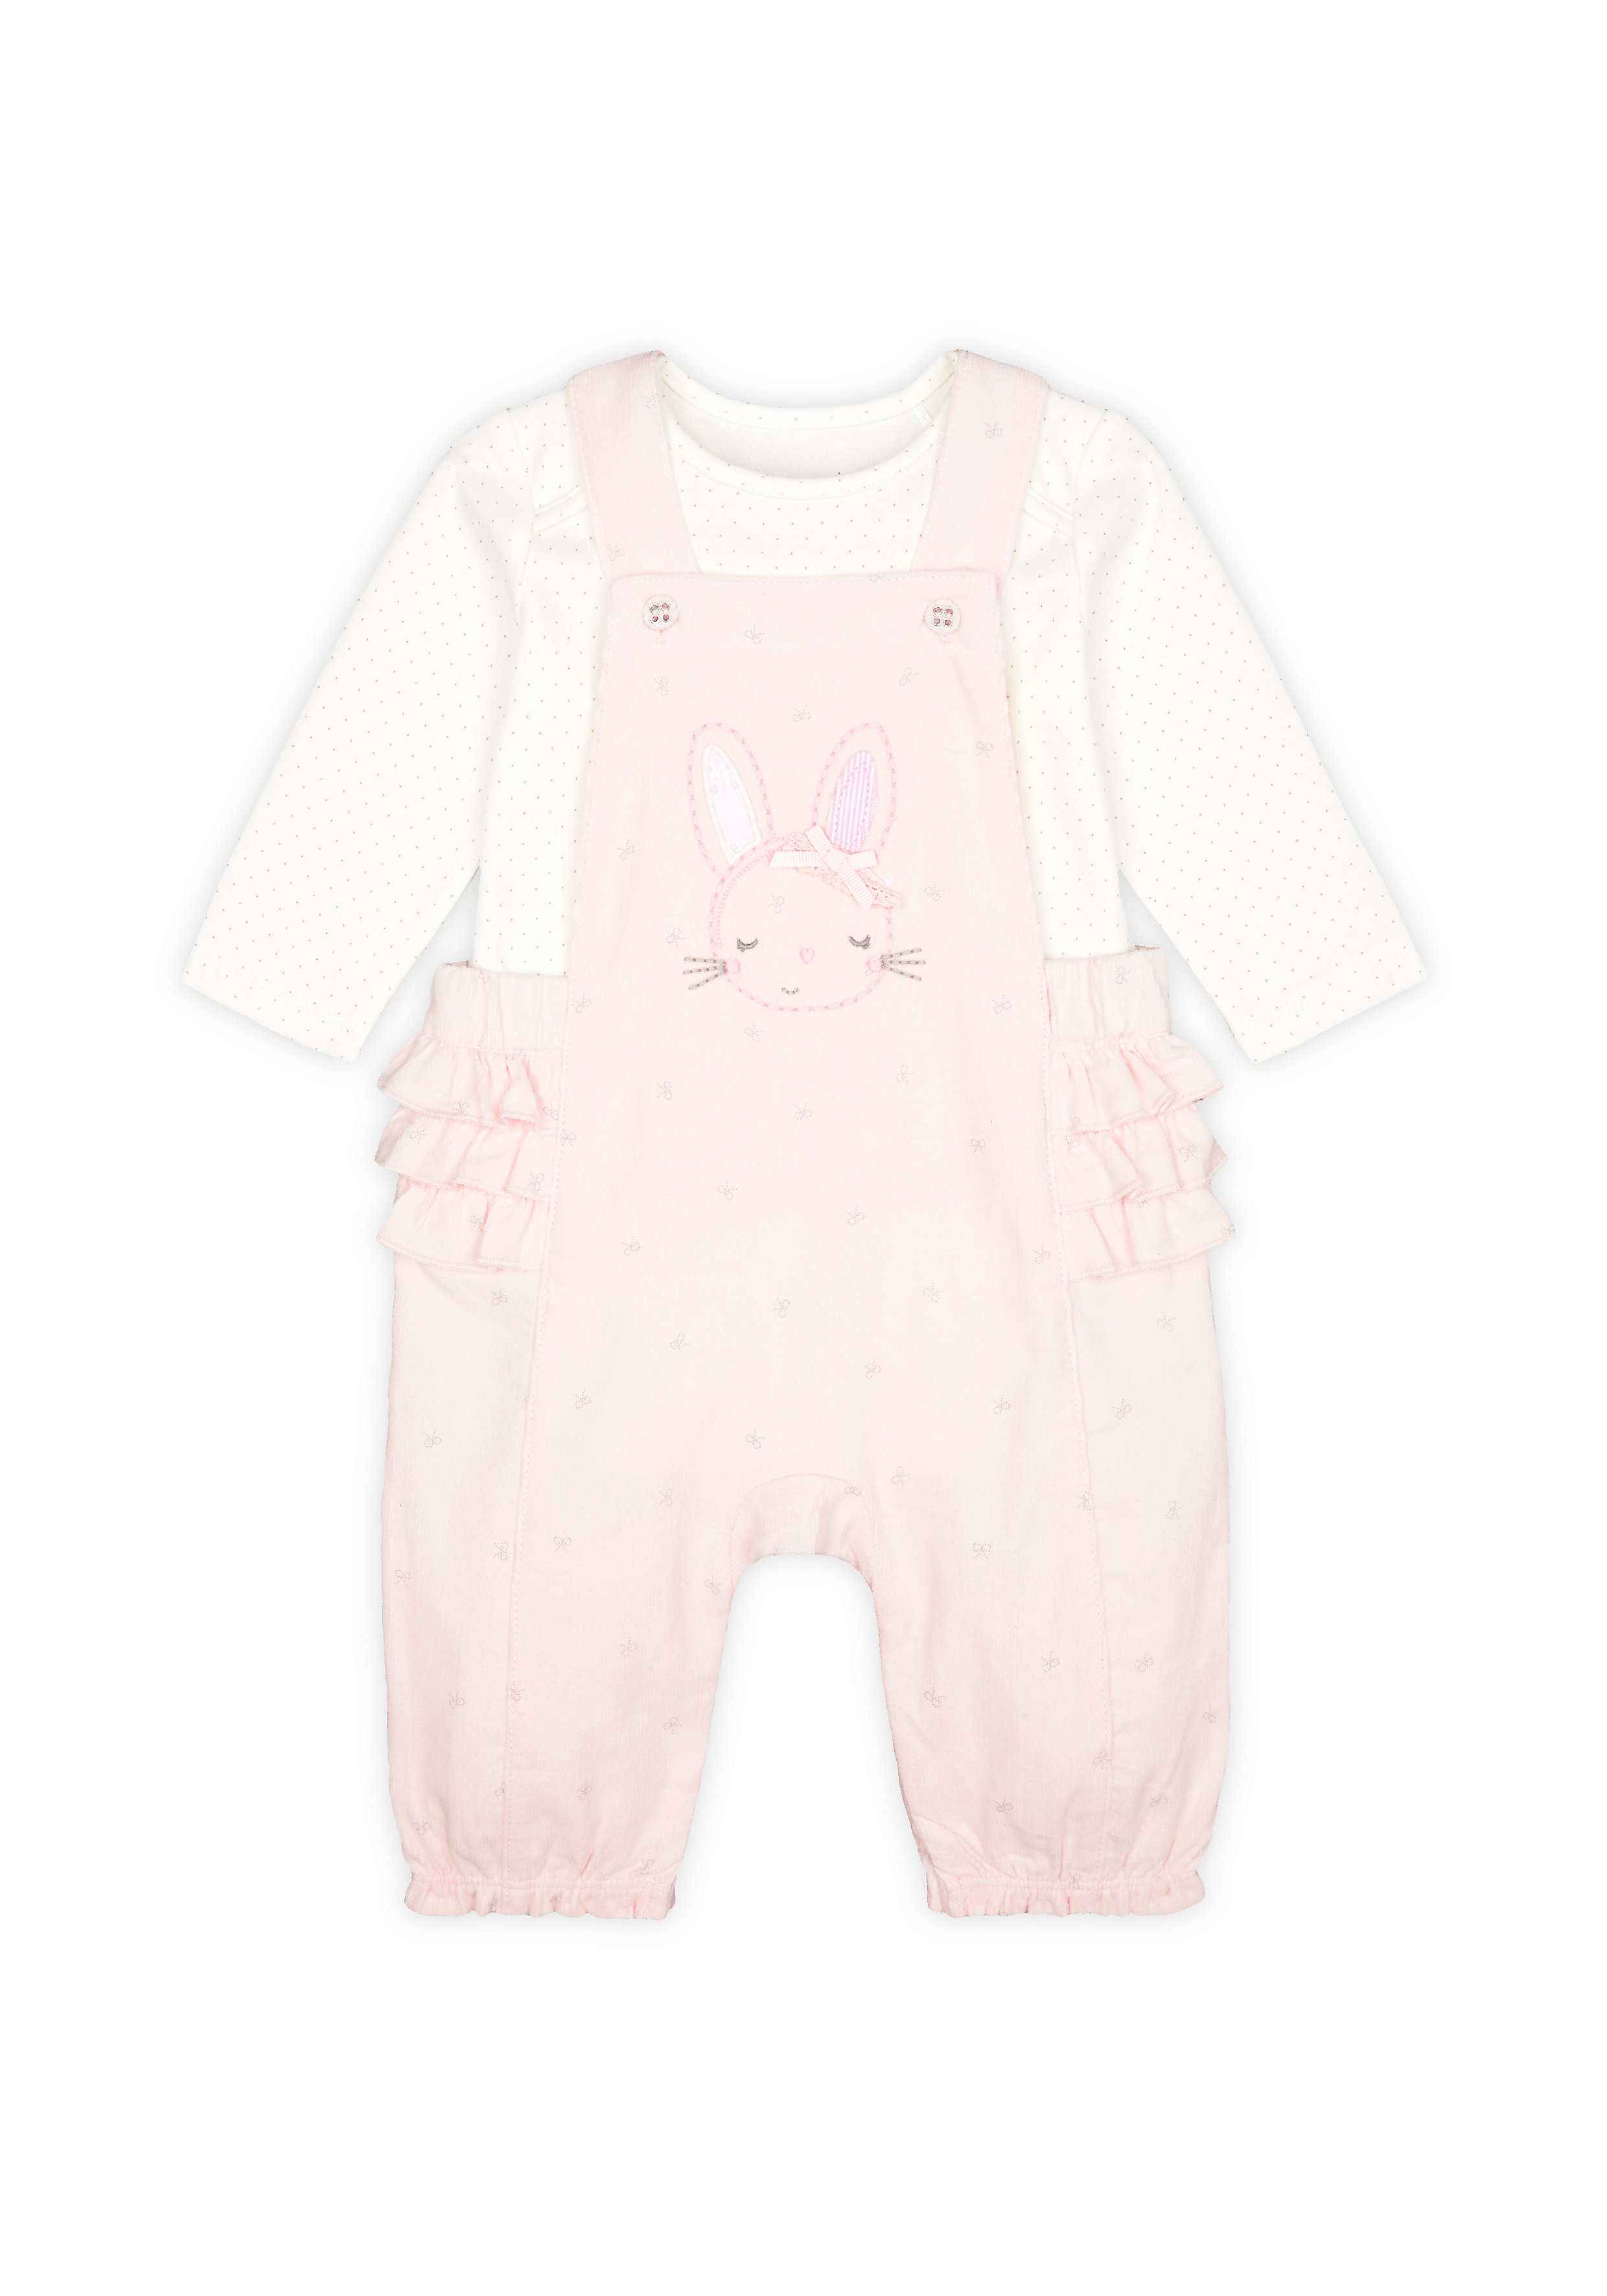 Mothercare   Girls Full Sleeves Cord Dungaree Set Bunny Embroidery With Frill Details - Pink